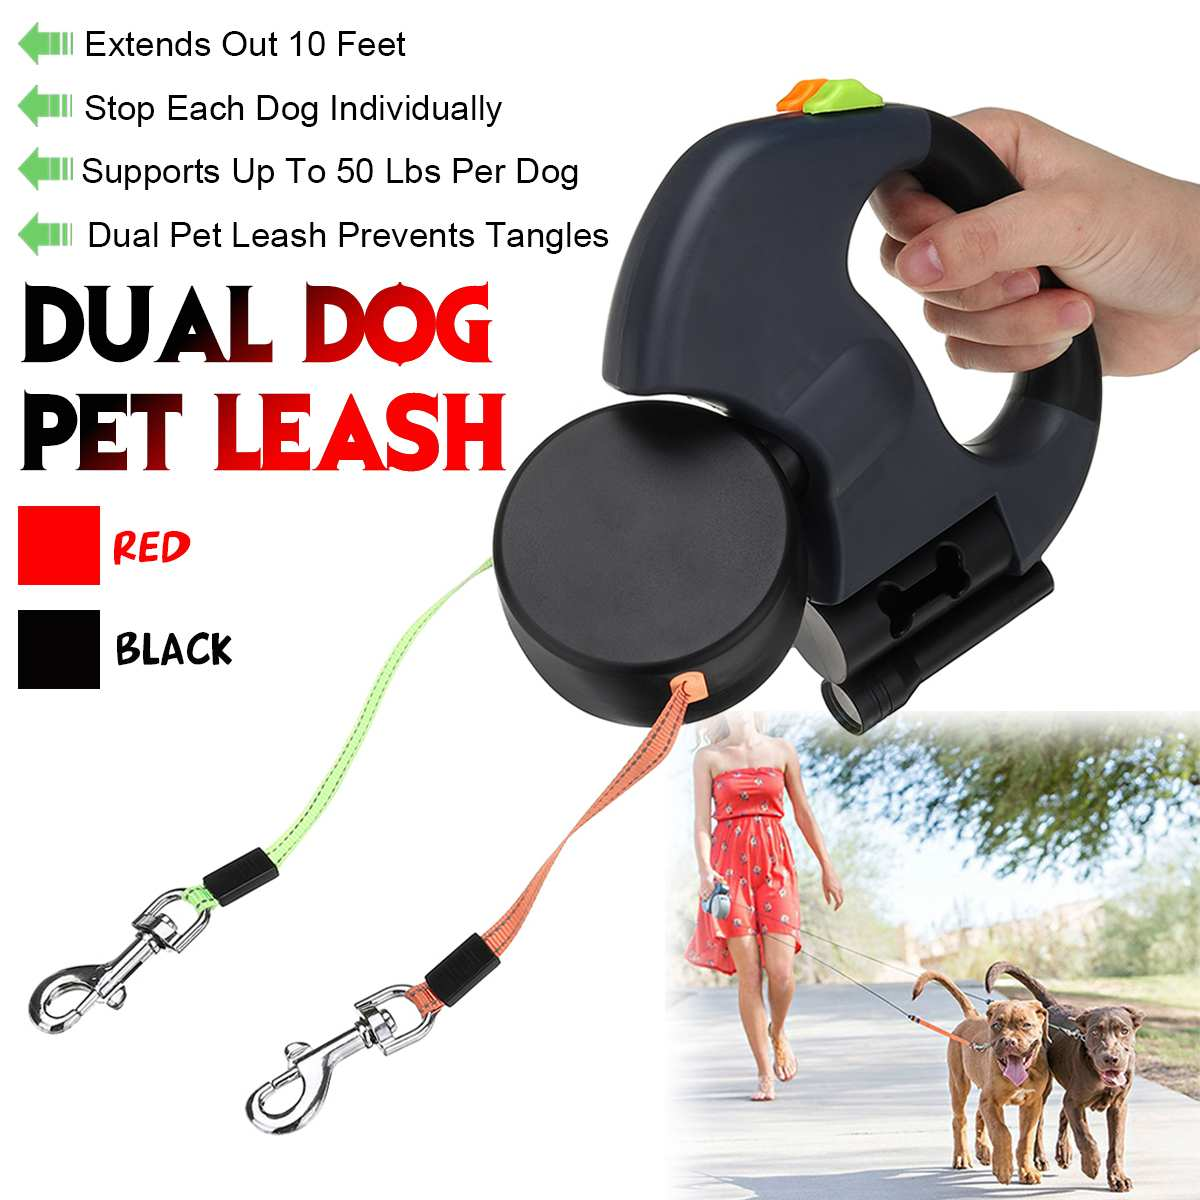 NEW Red/Black Dual Pet Dog Leash Retractable Walking Leash 300CM Length Double Leashes Pet Products Suit For 50 Lbs Per Dog